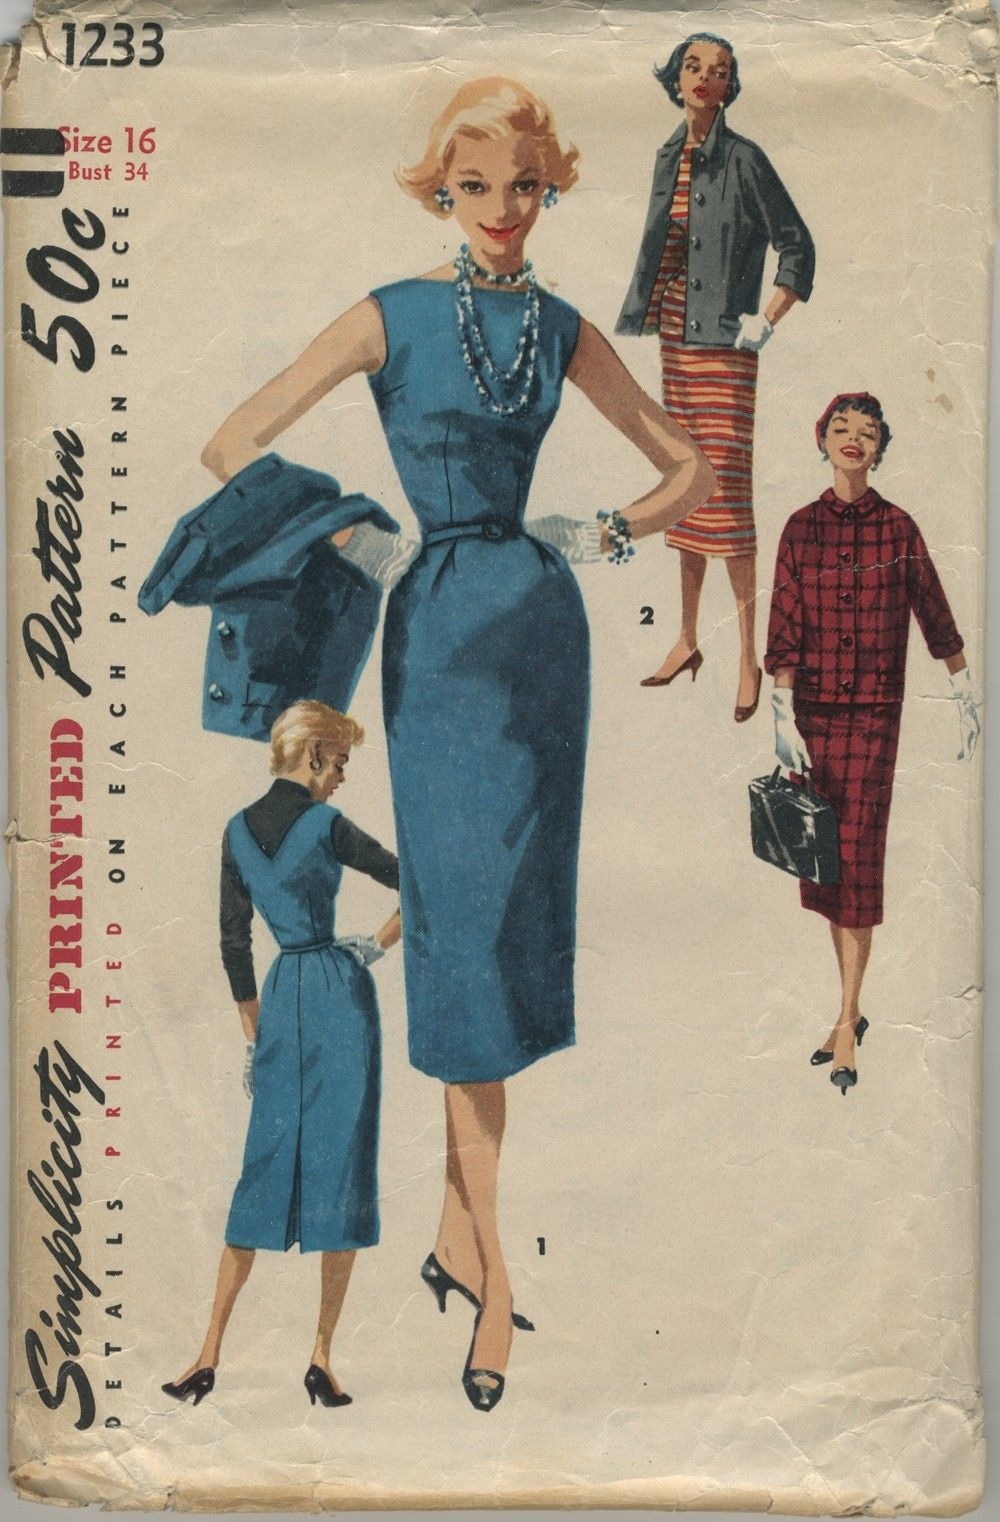 1950s fashion on 1950s 1950s fashion